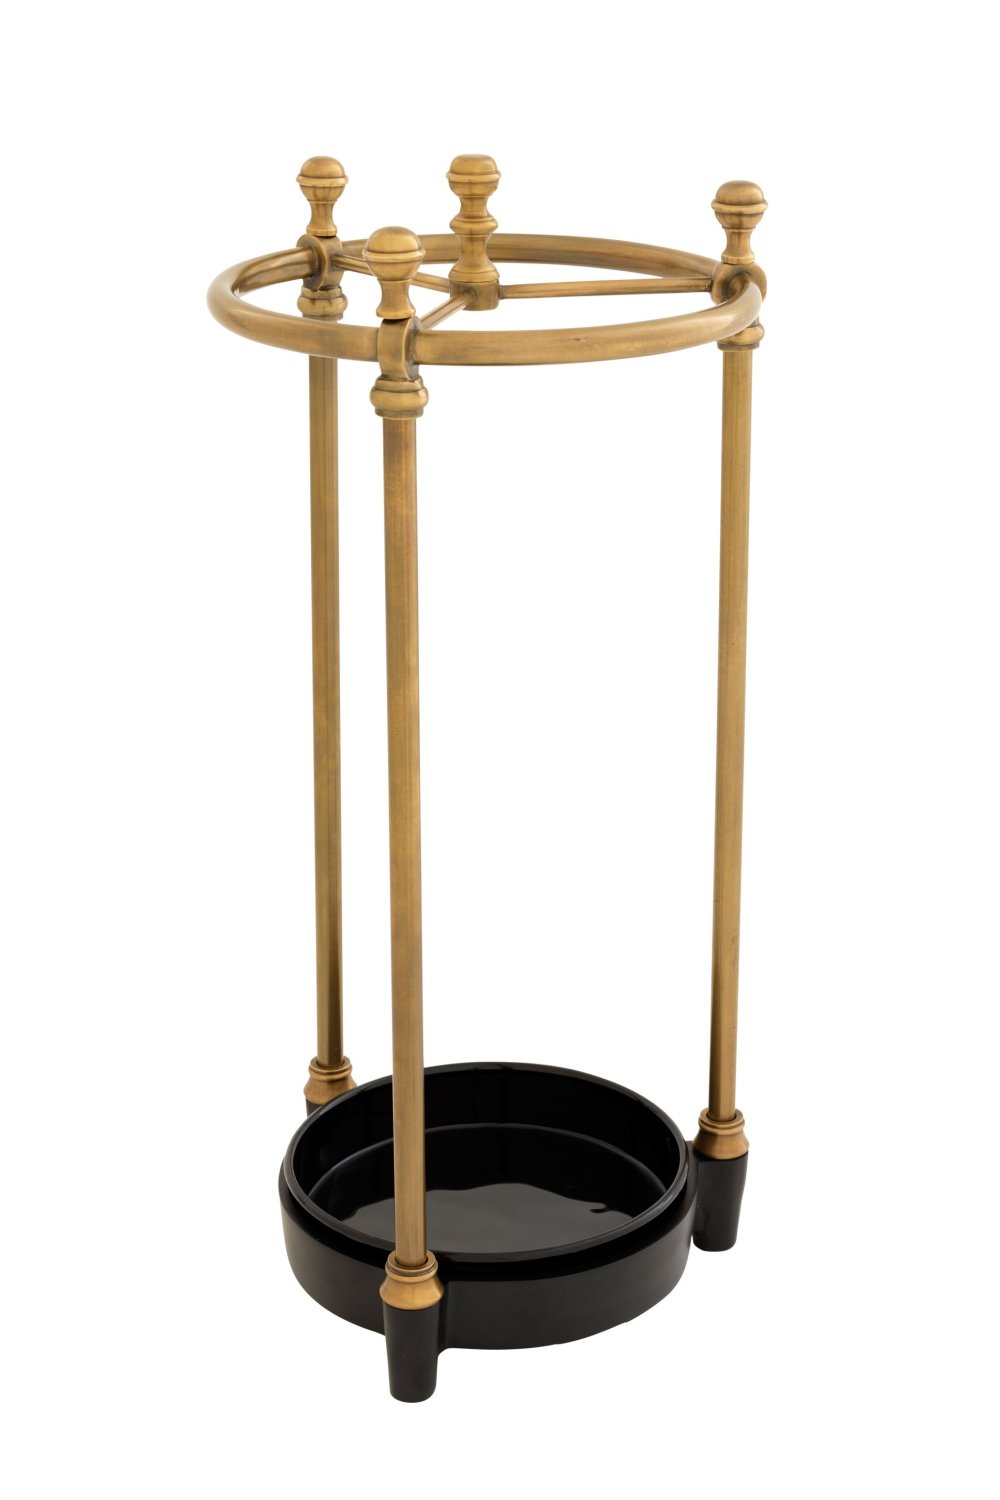 Gold Umbrella Stand | Eichholtz Artman